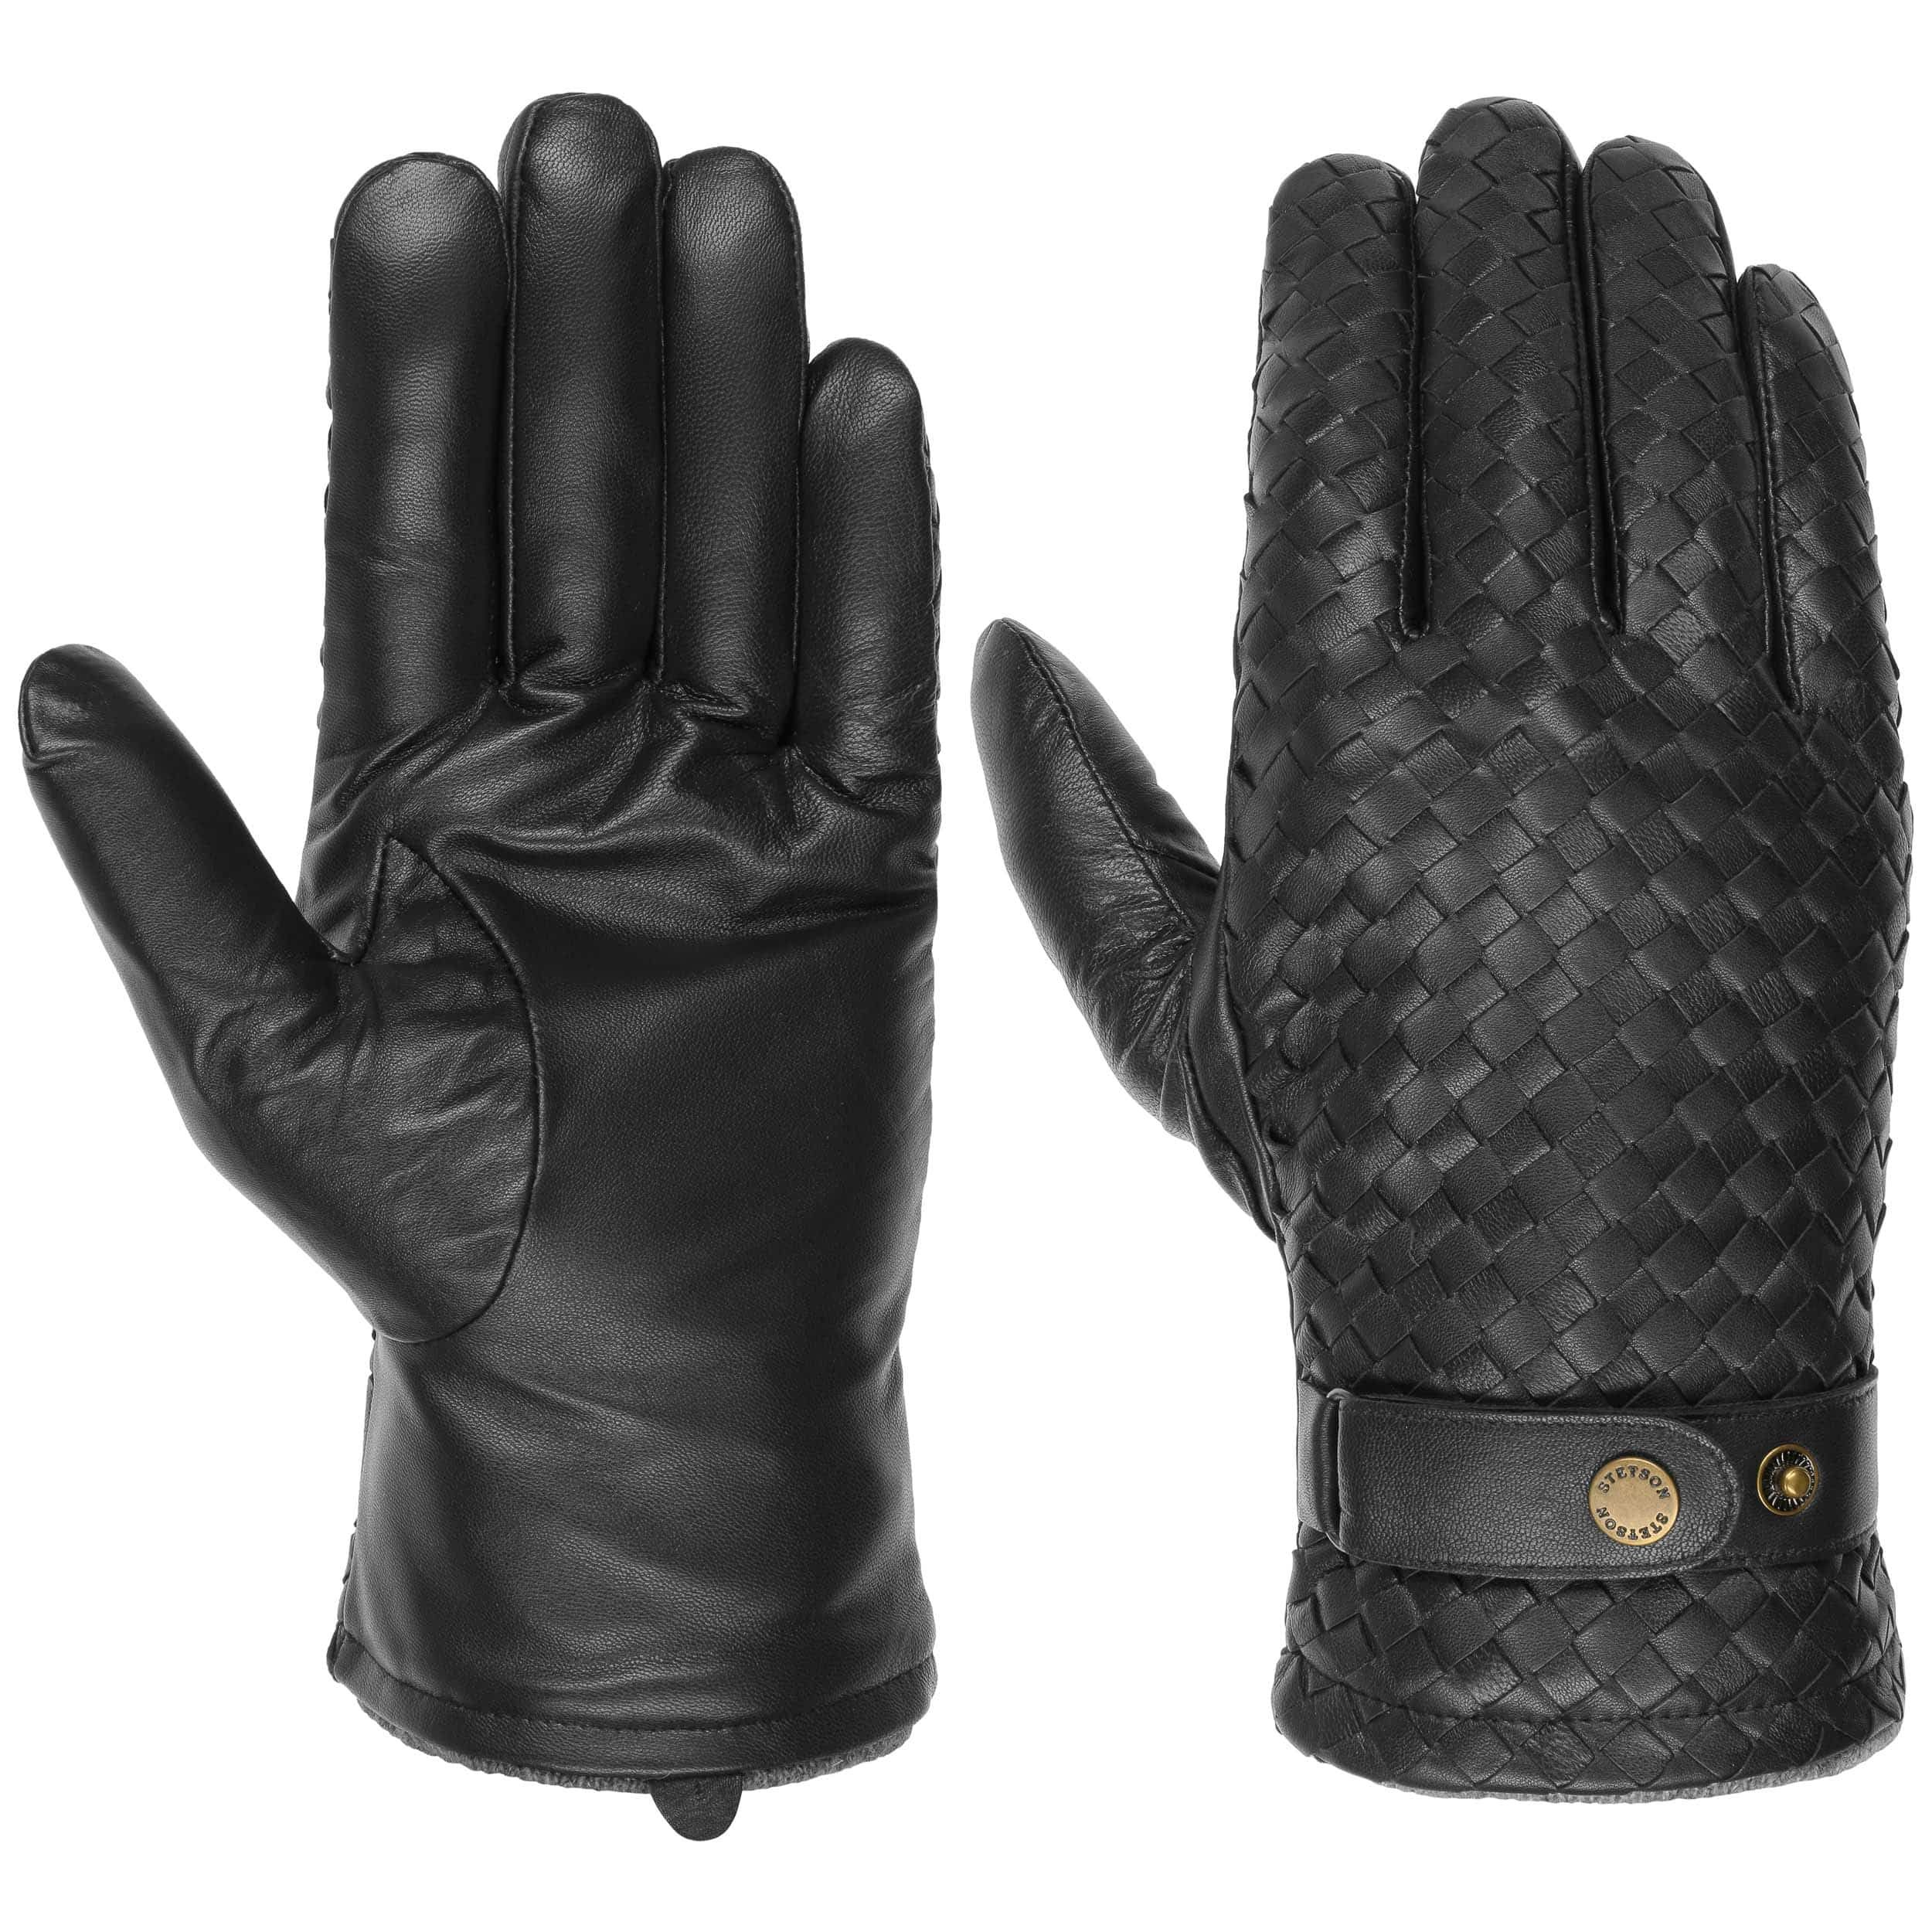 Guantes Sheep Nappa negro